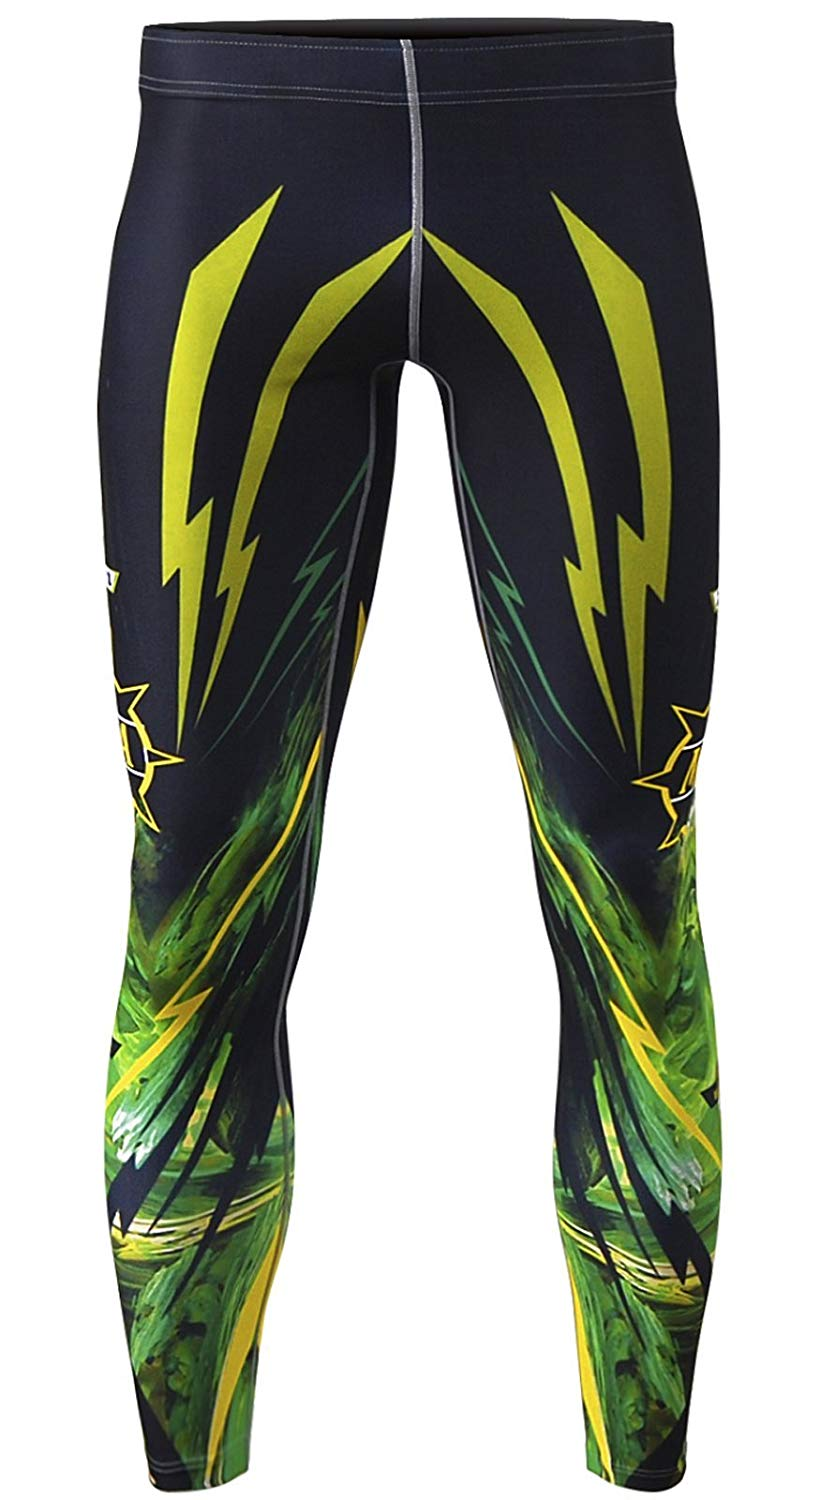 bce8a6632c Get Quotations · zipravs Mens Athletic Compression Base Layers Running  Exercise Fitness MMA Pants Tights